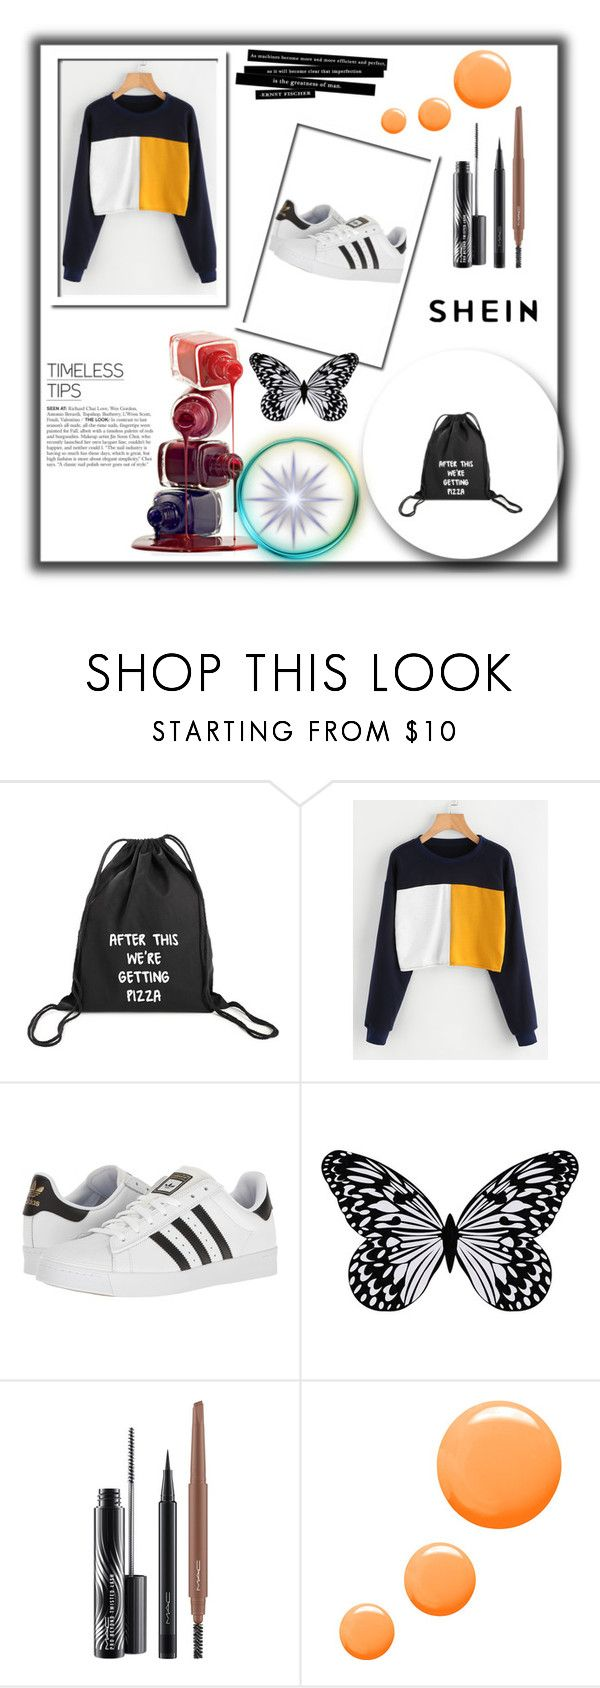 """shein contest"" by lime-kiwano ❤ liked on Polyvore featuring adidas, Visionnaire, MAC Cosmetics and Topshop"